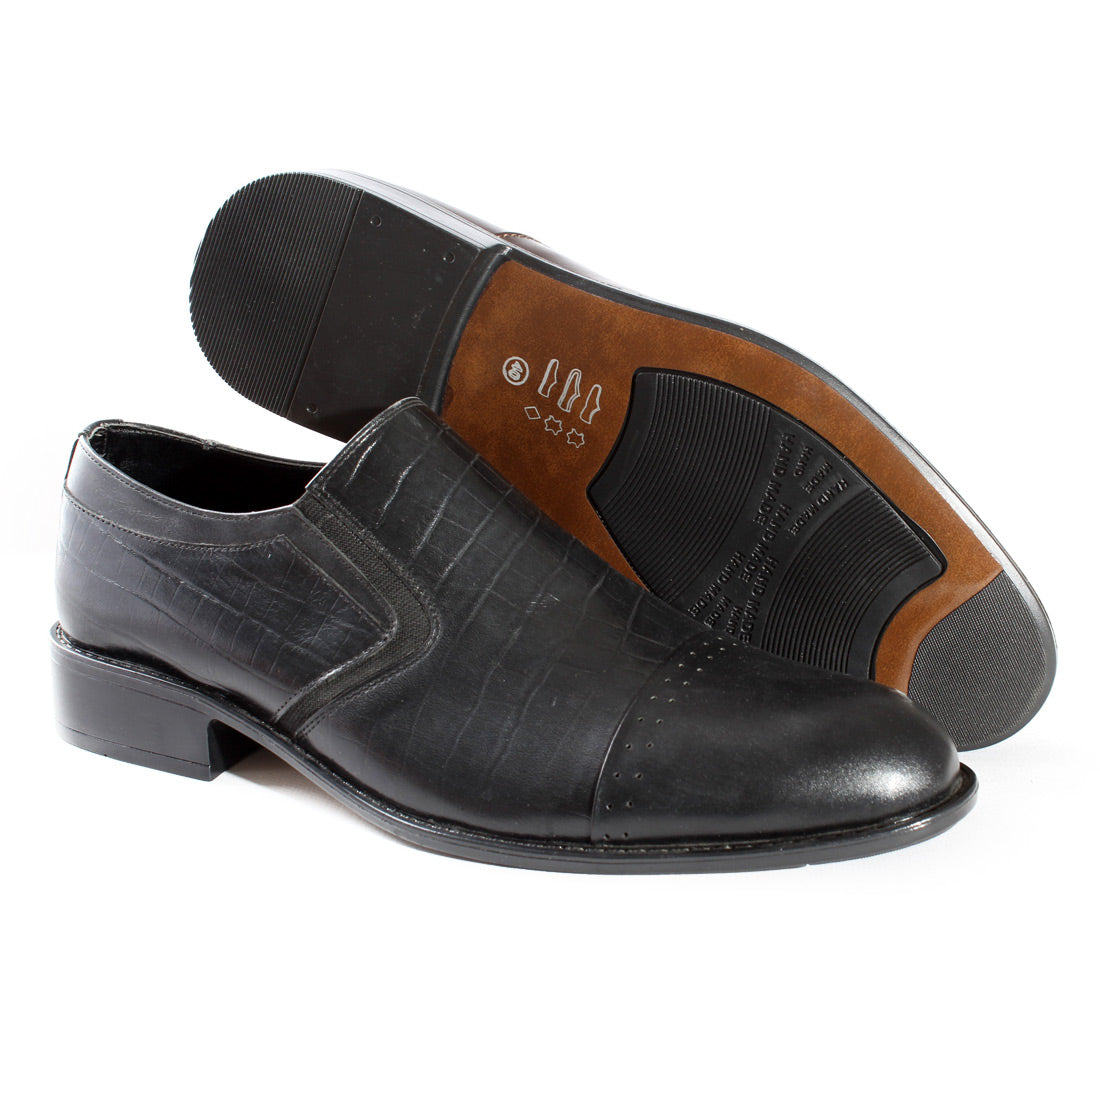 RUSTIC MEN FORMAL SHOES -3486-1